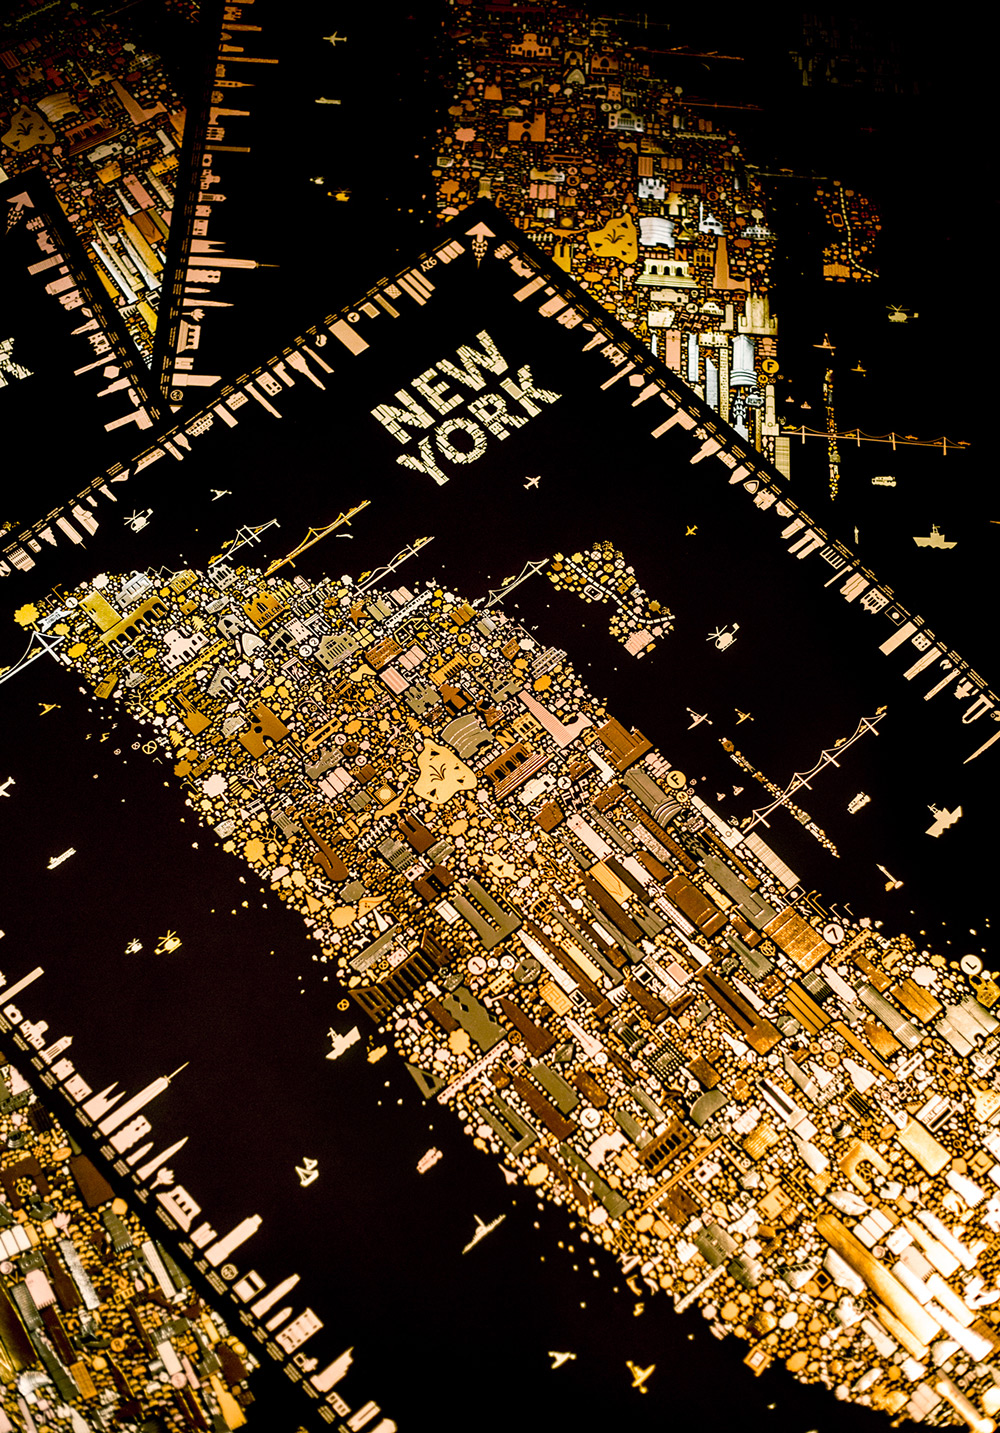 iconic_new_york_illuminated_01